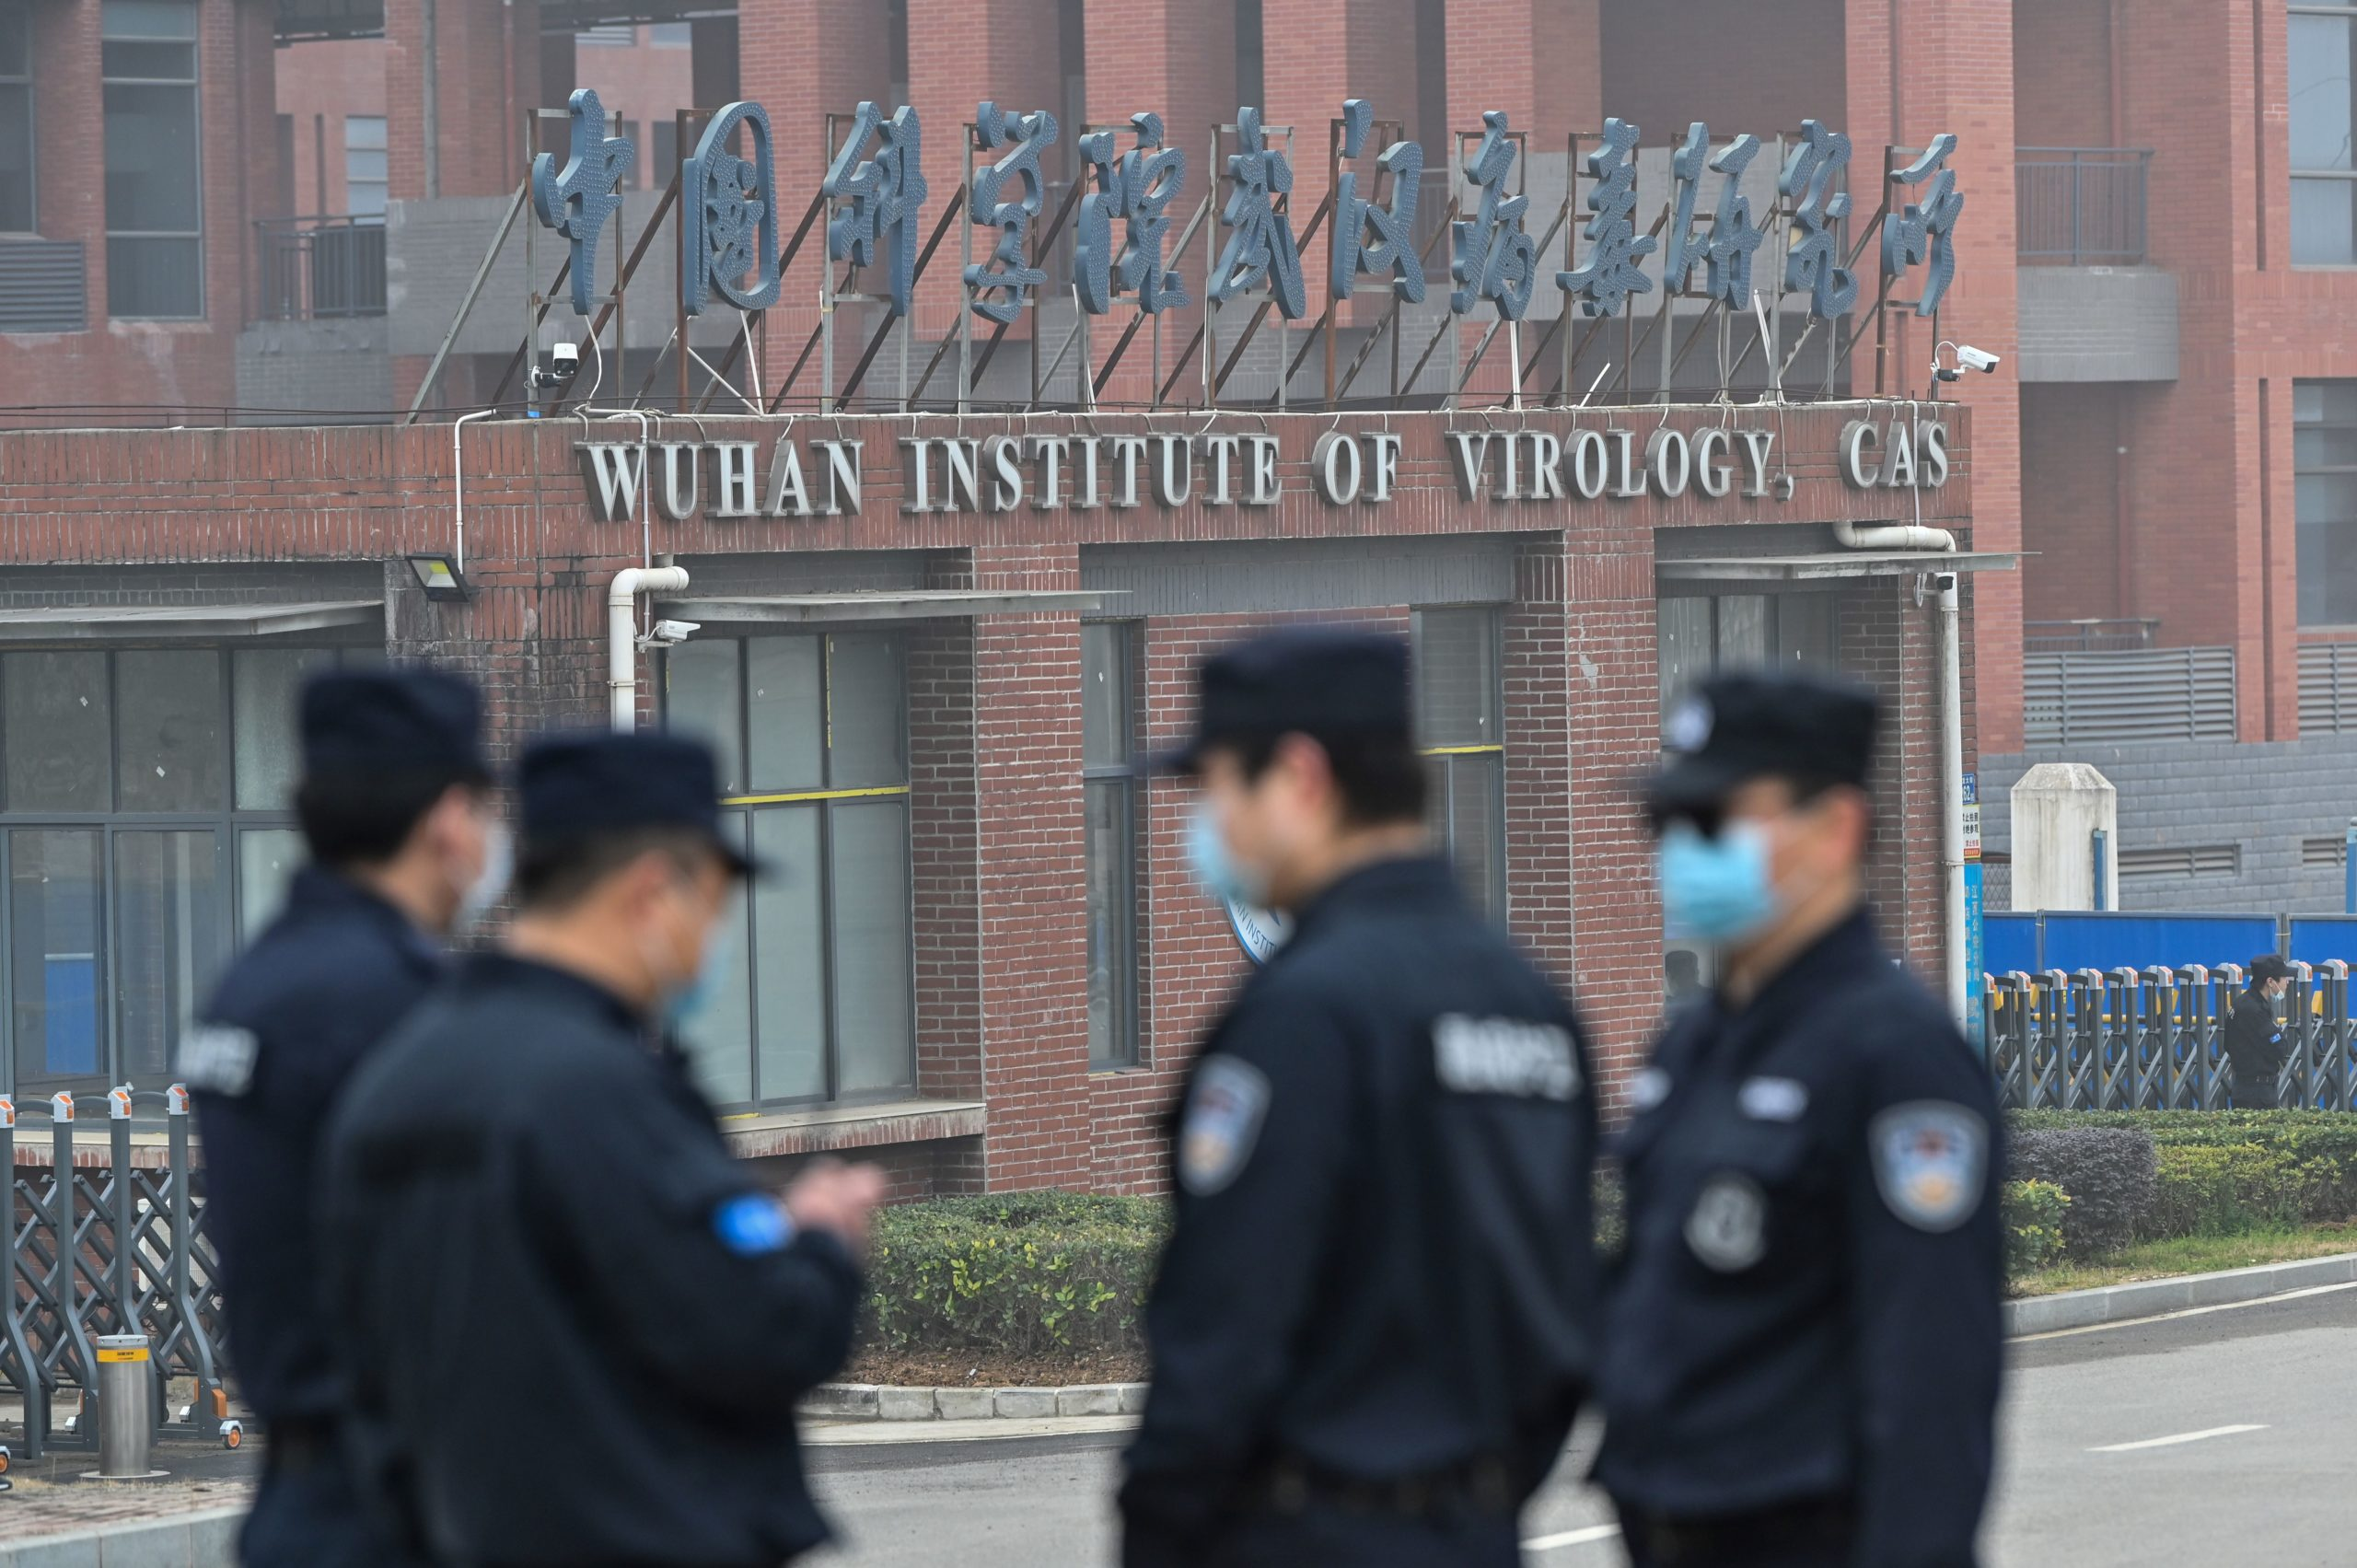 Security personnel stand guard outside the Wuhan Institute of Virology in February. (Hector Retamal/AFP via Getty Images)